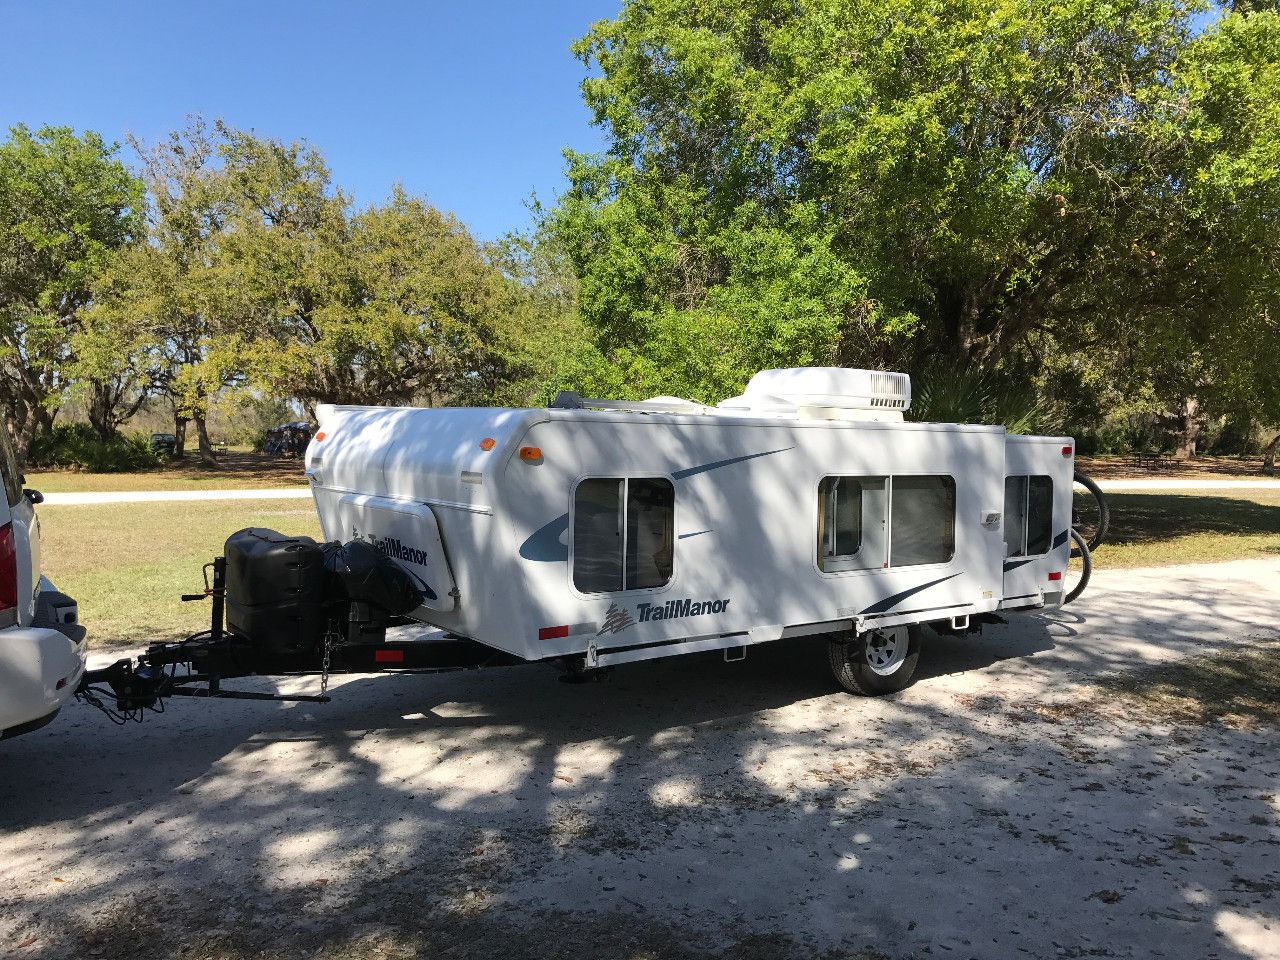 Check Out This 2008 Trailmanor 2619 Listing In Miami Fl 33196 On